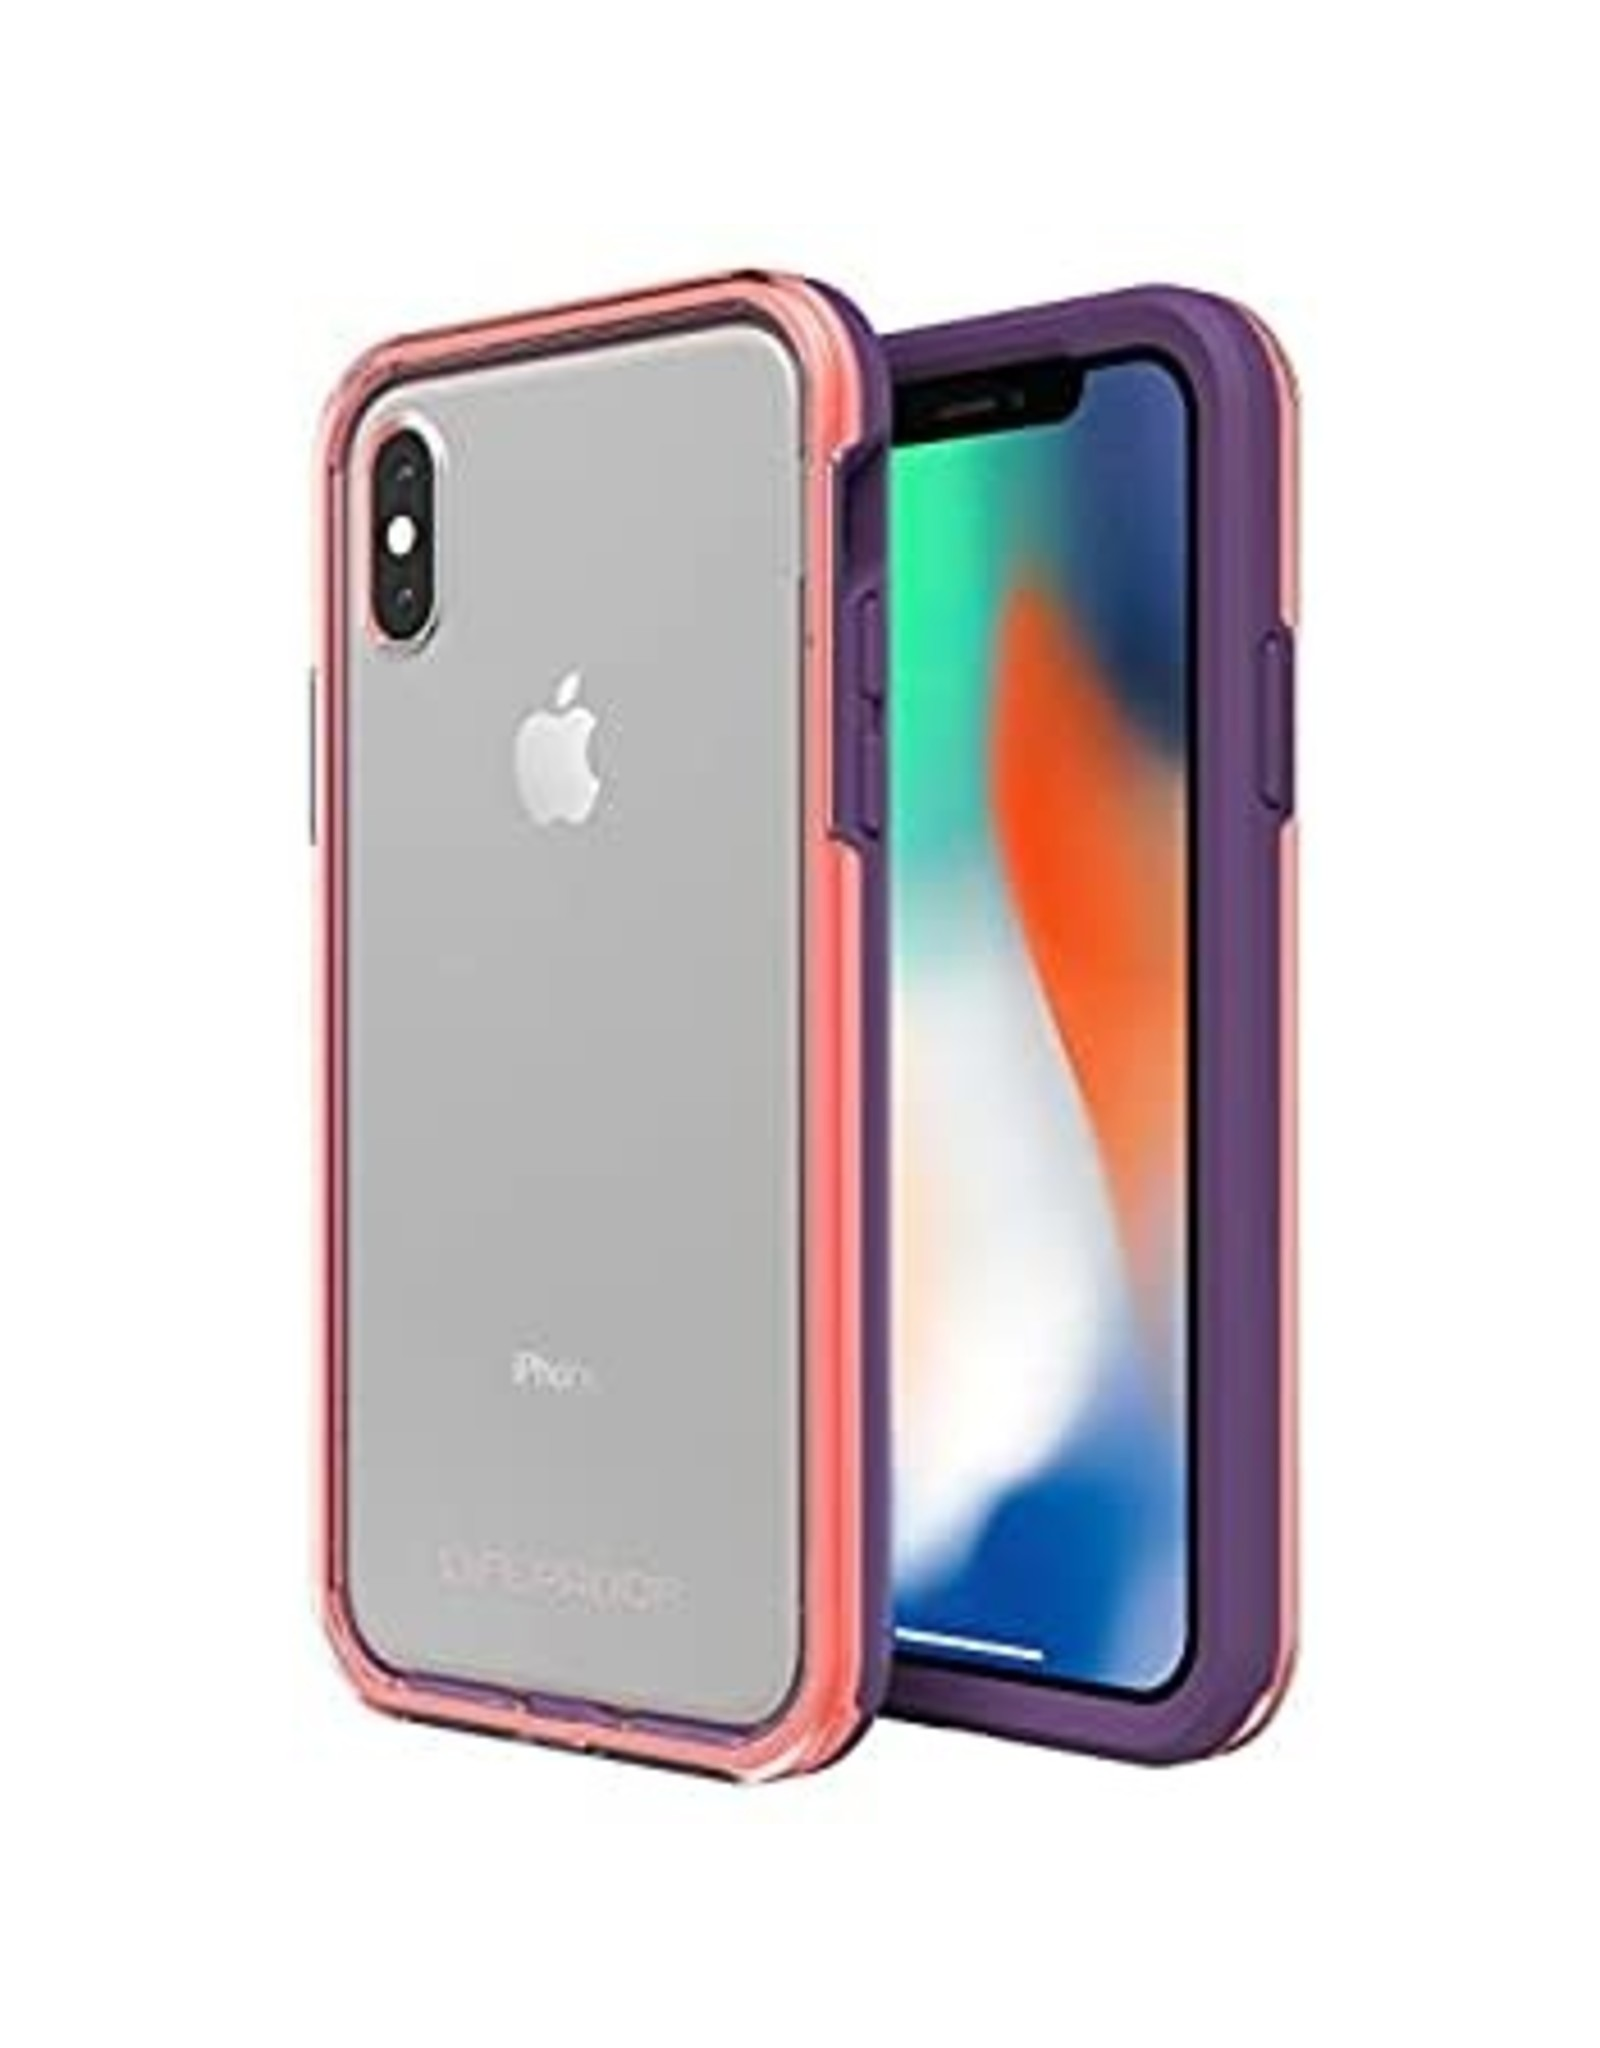 Lifeproof LifeProof Slam Case suits iPhone X - Clear/Coral/Lilac EOL